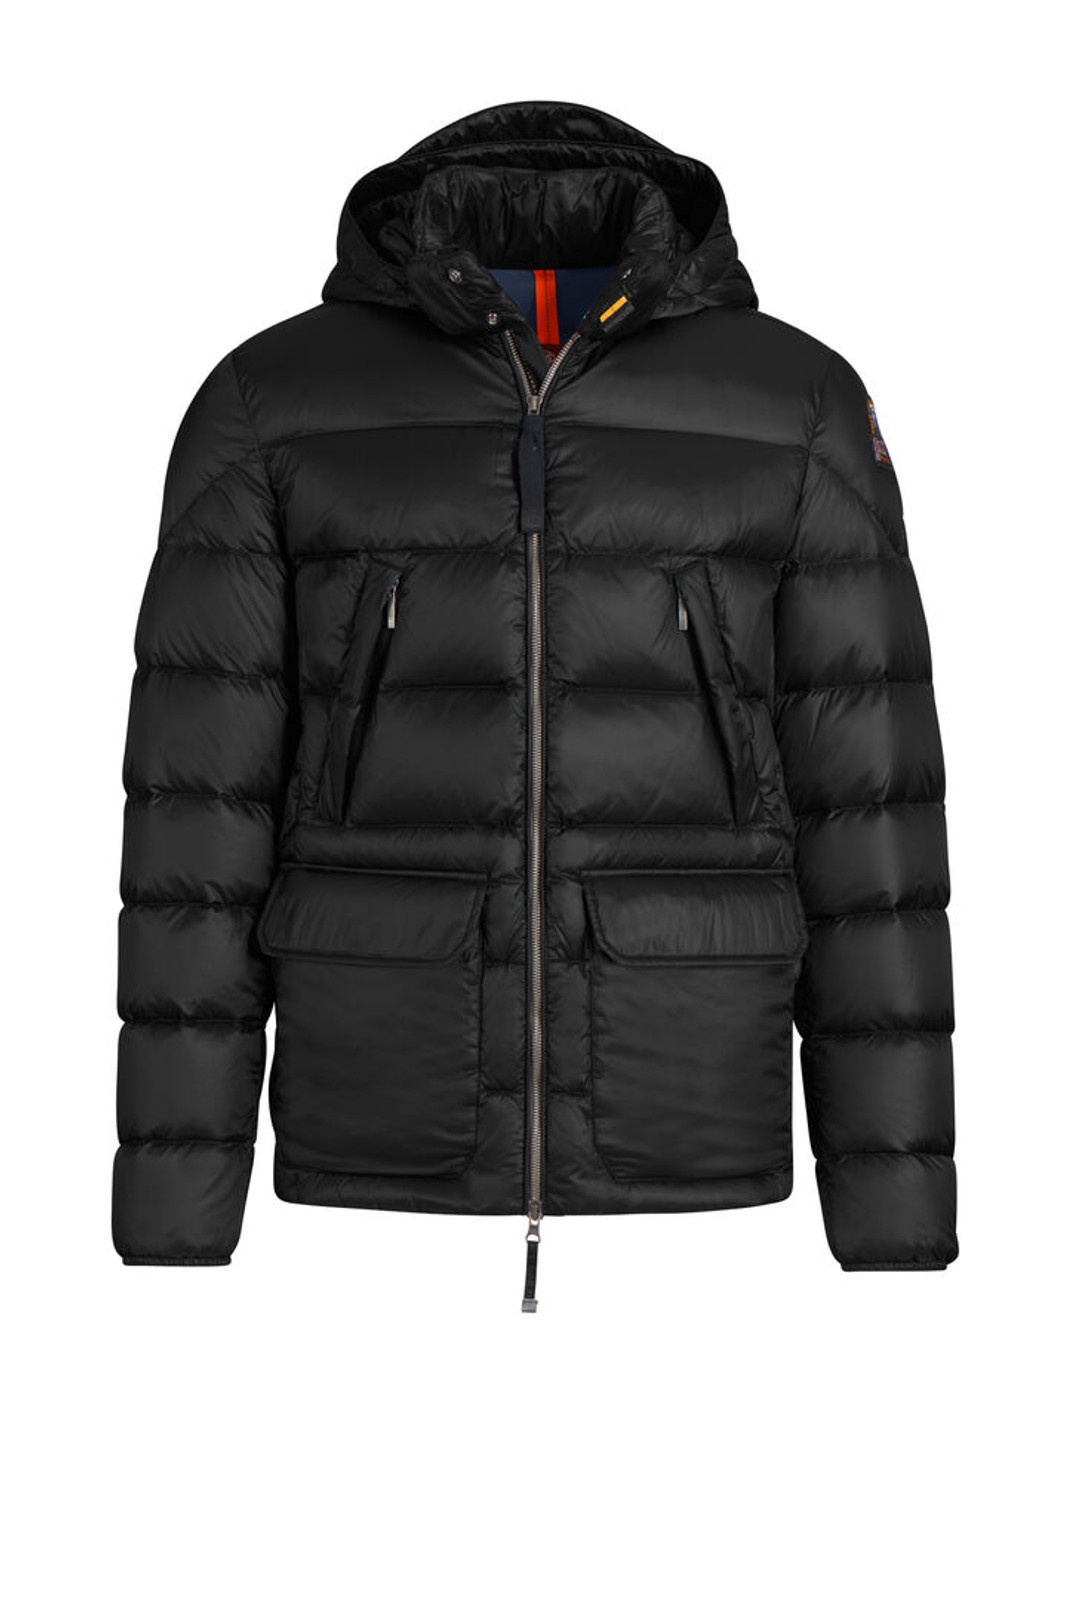 Parajumpers Greg Puffer Jacket, Men's, Pencil (PMJCKSX04-710) front